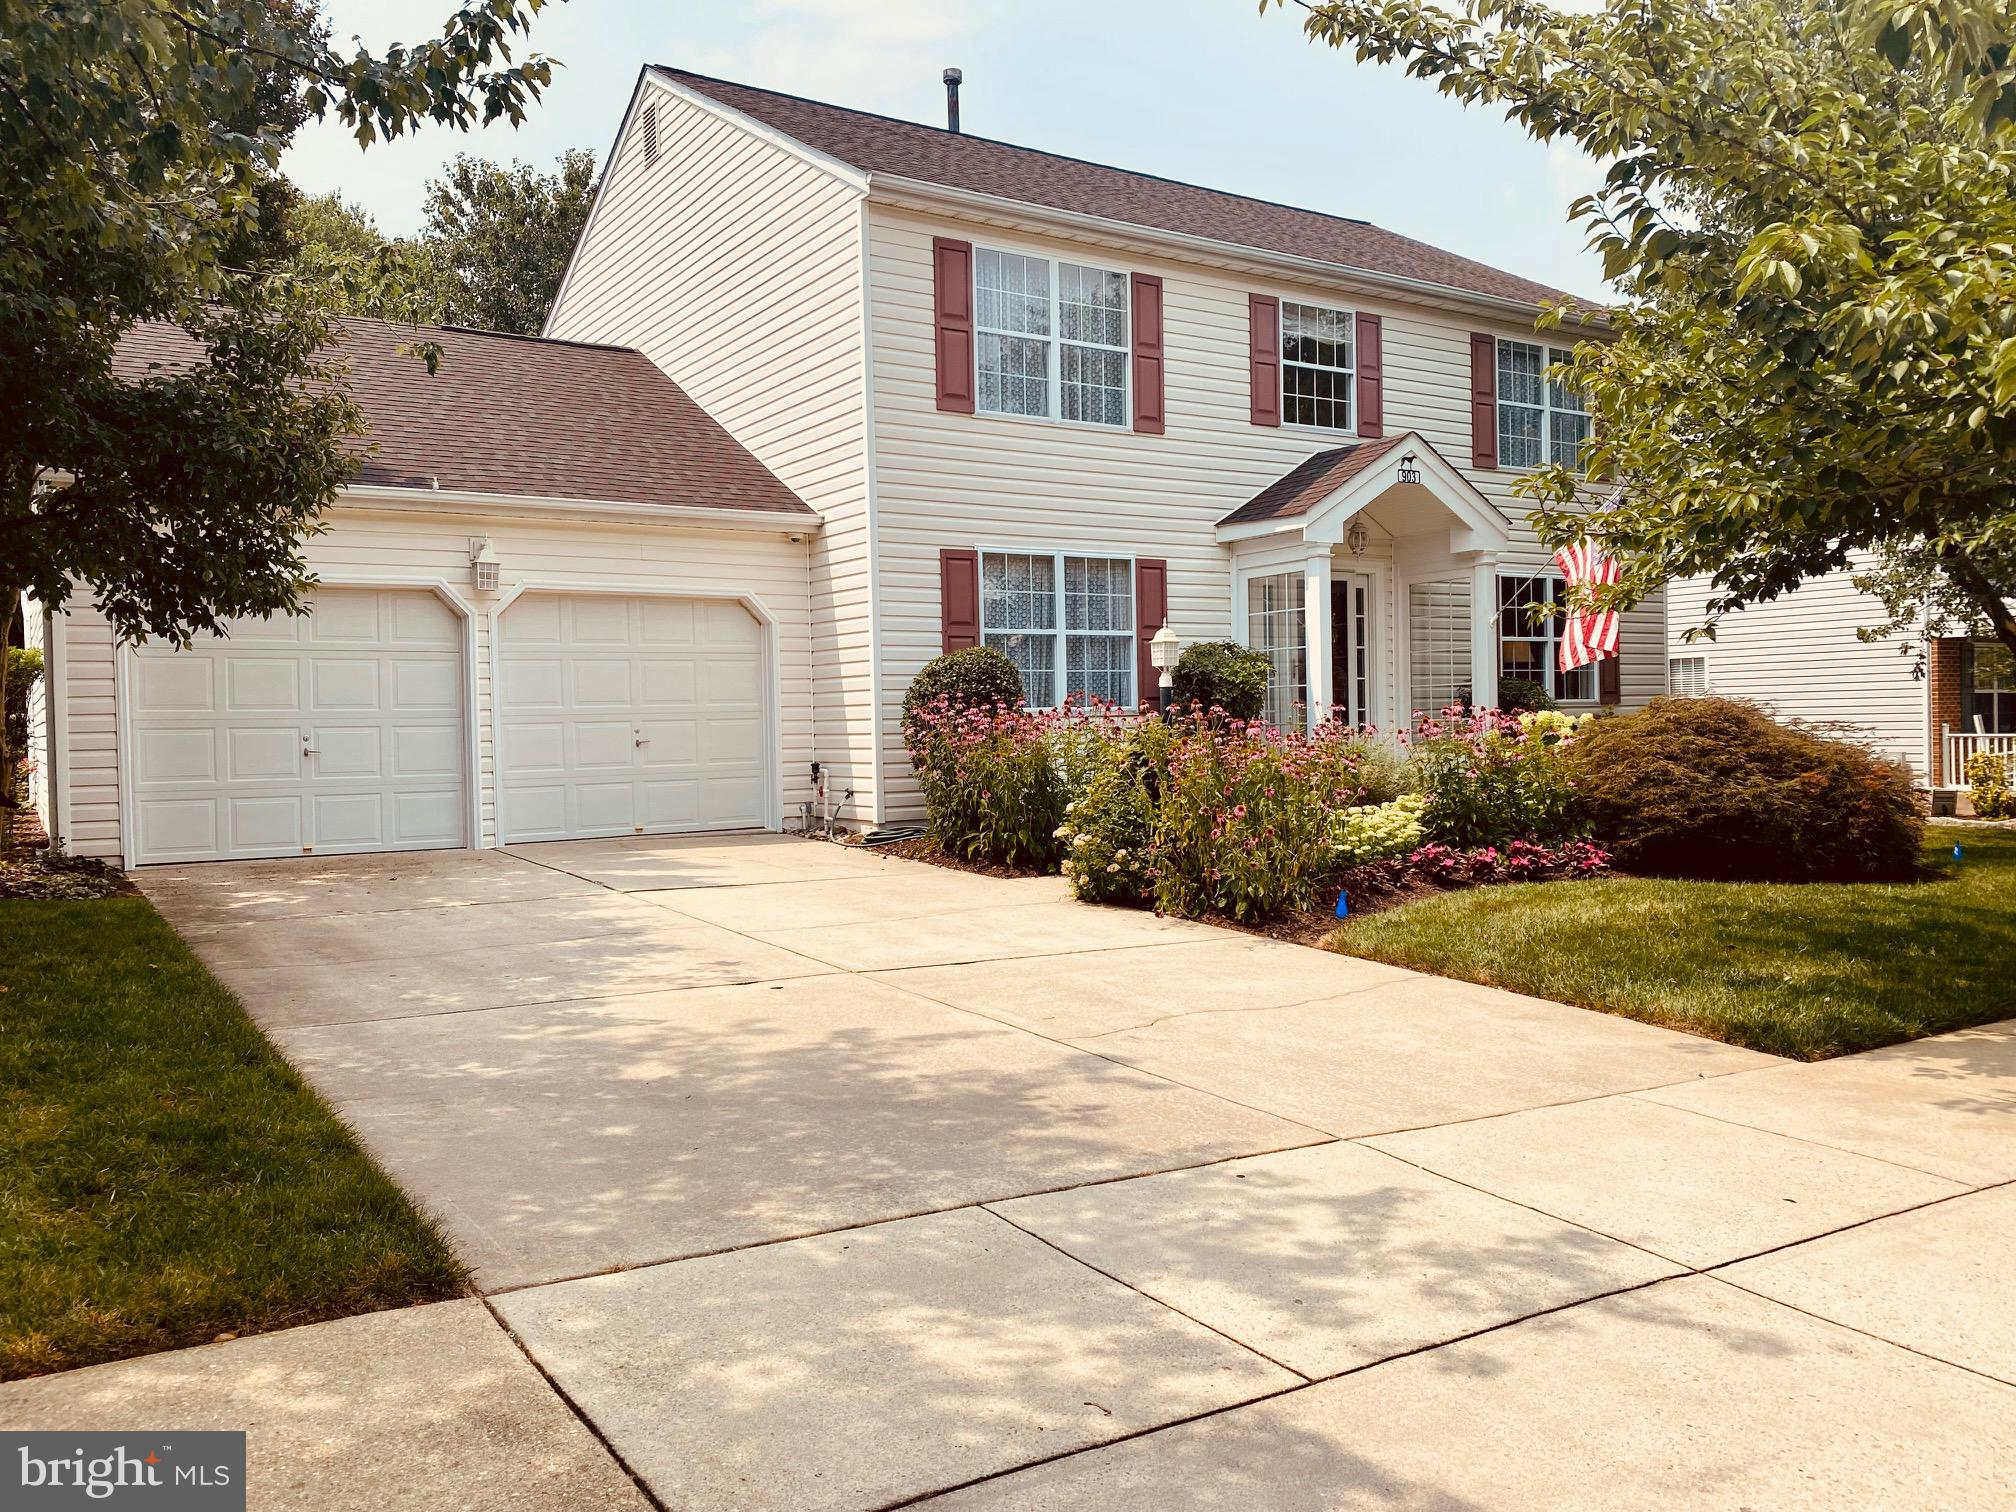 Piney Orchard  4 bedroom, 3 full & 1 half bathroom detached home with a 2 car garage. Beautiful hard